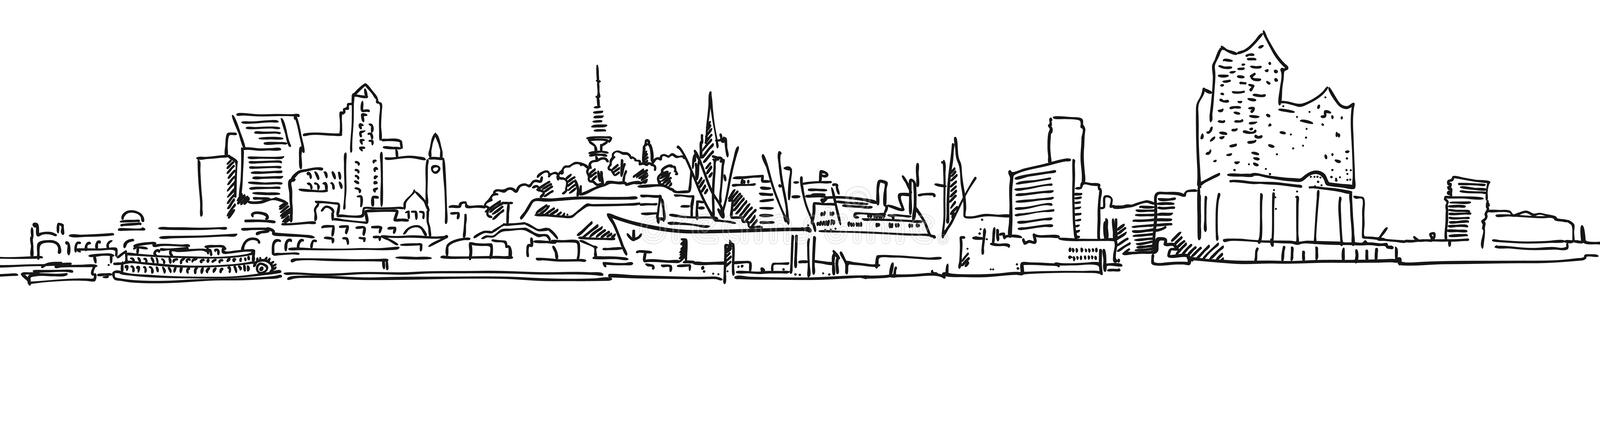 Panorama för horisontHamburg port stock illustrationer